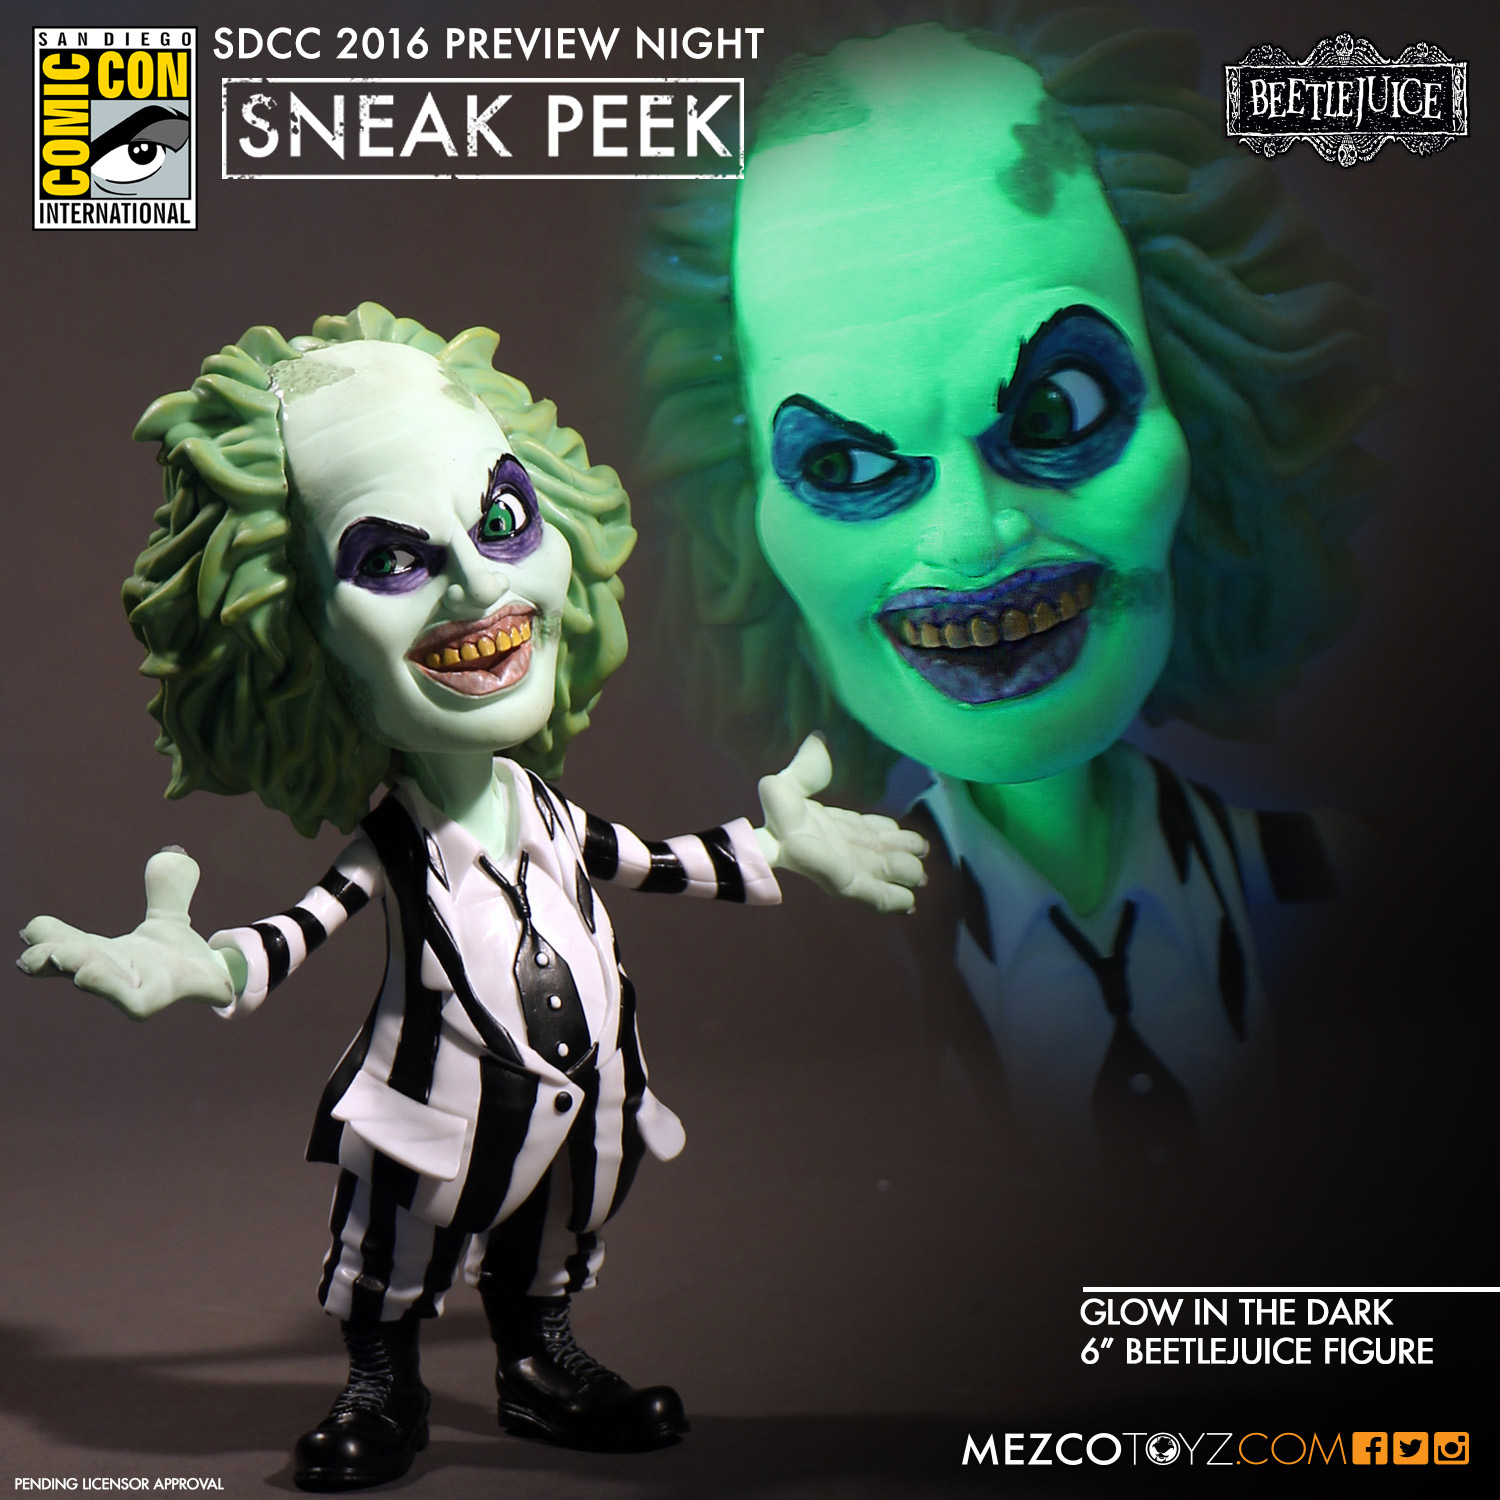 Beetlejuice Glow-in-the-dark Variant